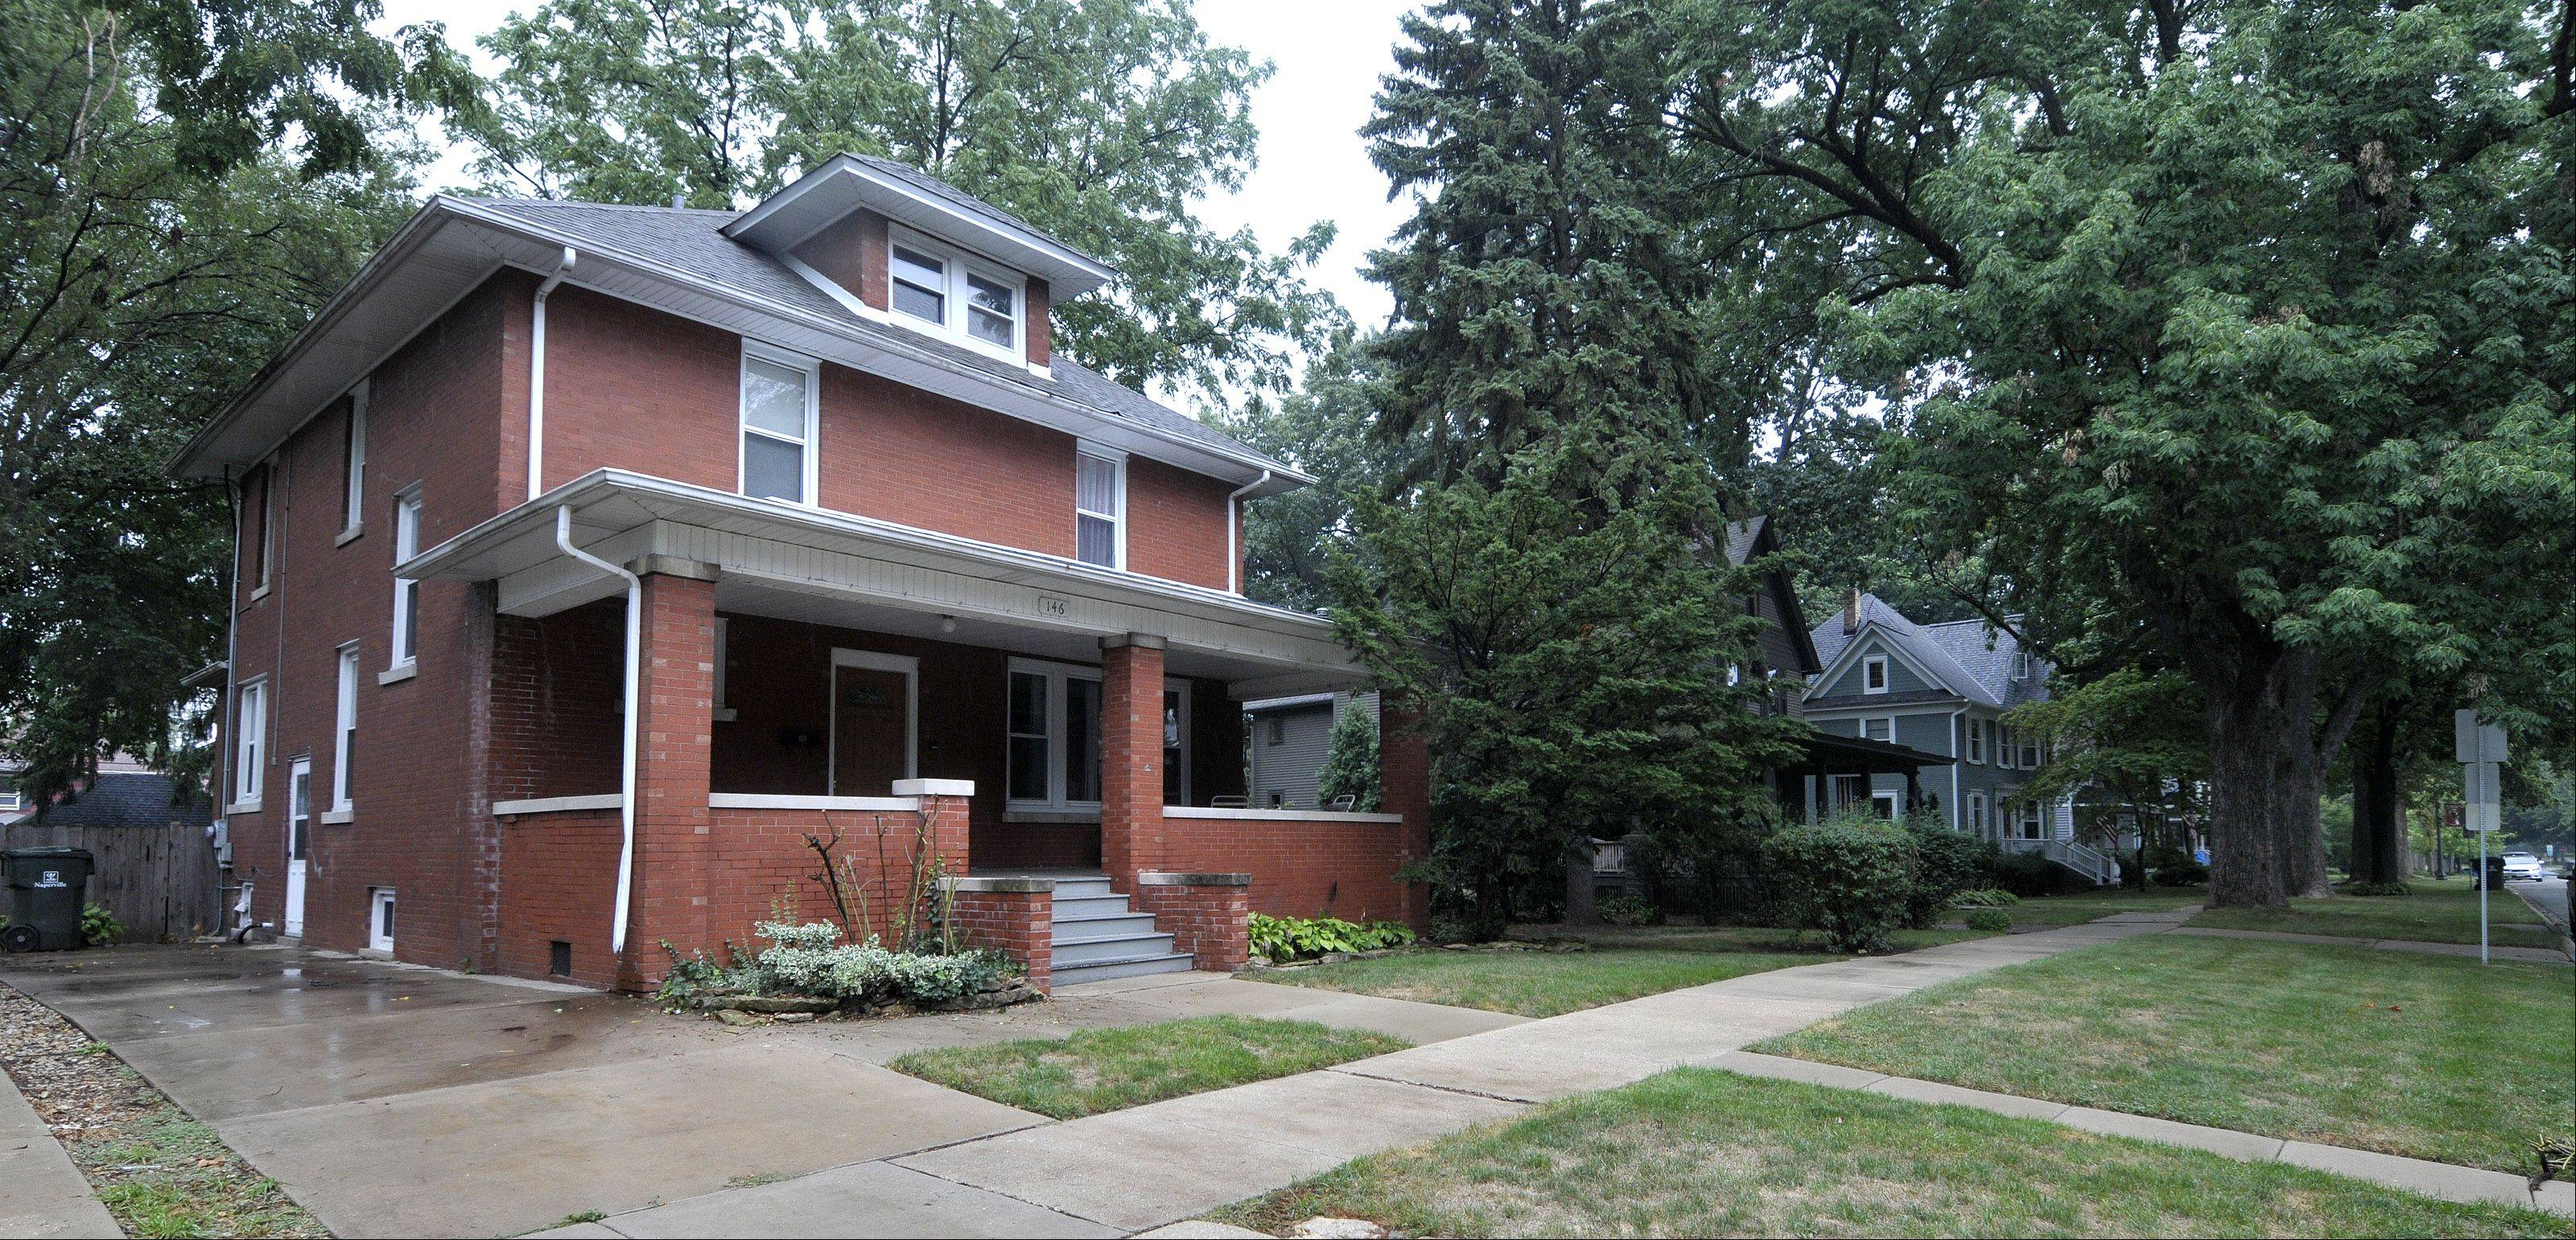 ChildServ officials hope to purchase the house that has operated as their Naperville youth home for more than 30 years.